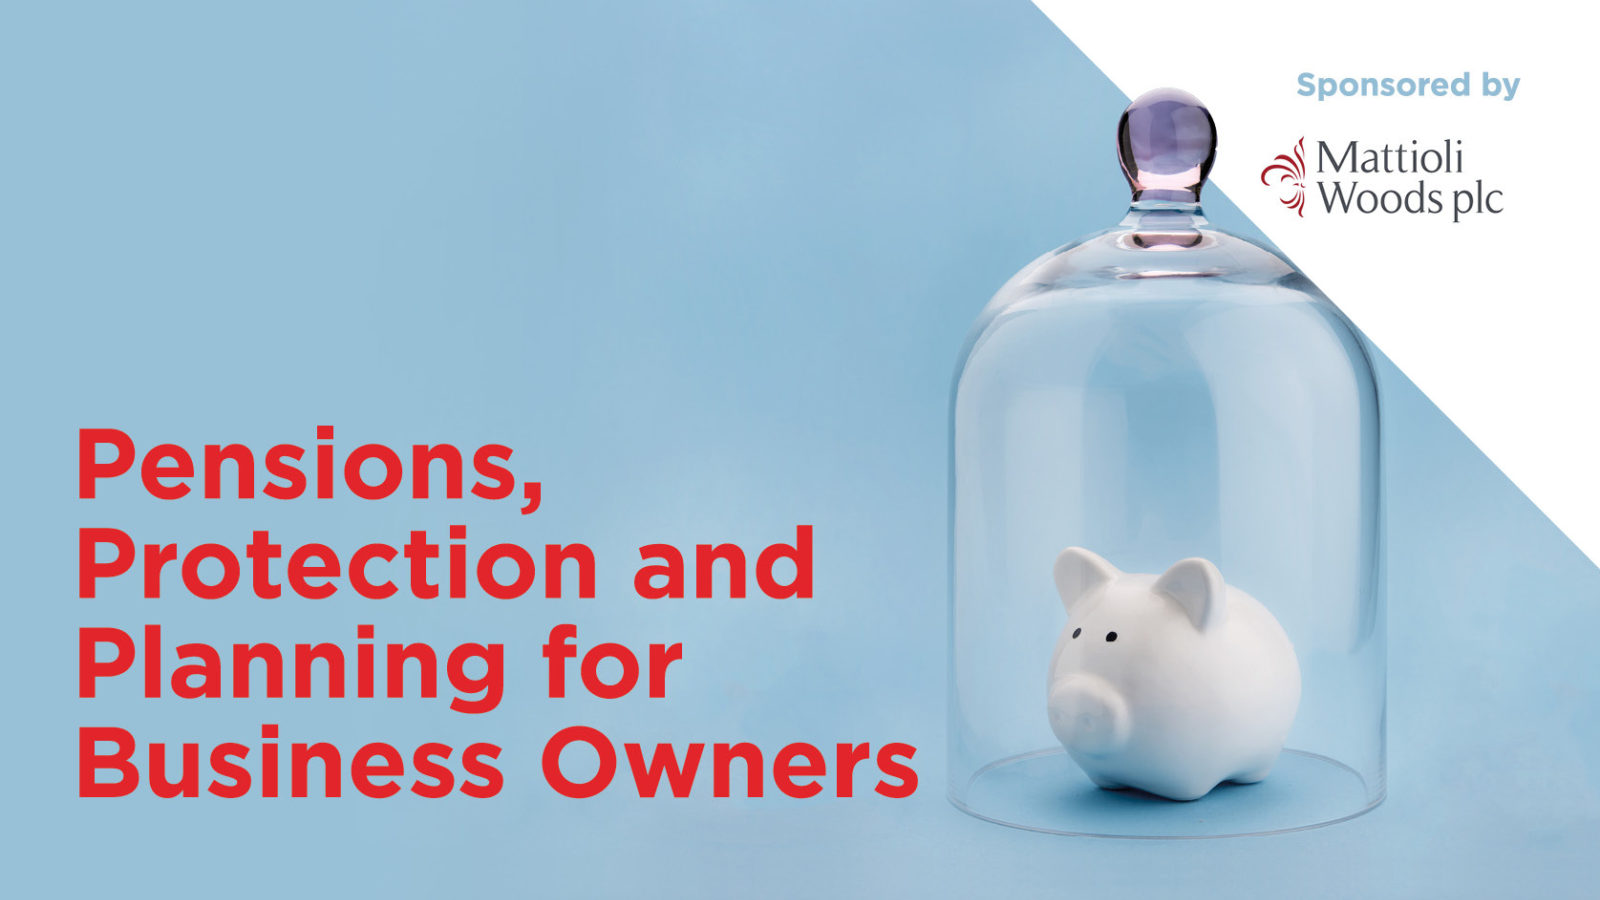 Pensions, Protection and Planning for Business Owners: The team from Mattioli Woods will present this, aimed at those who run and own small businesses